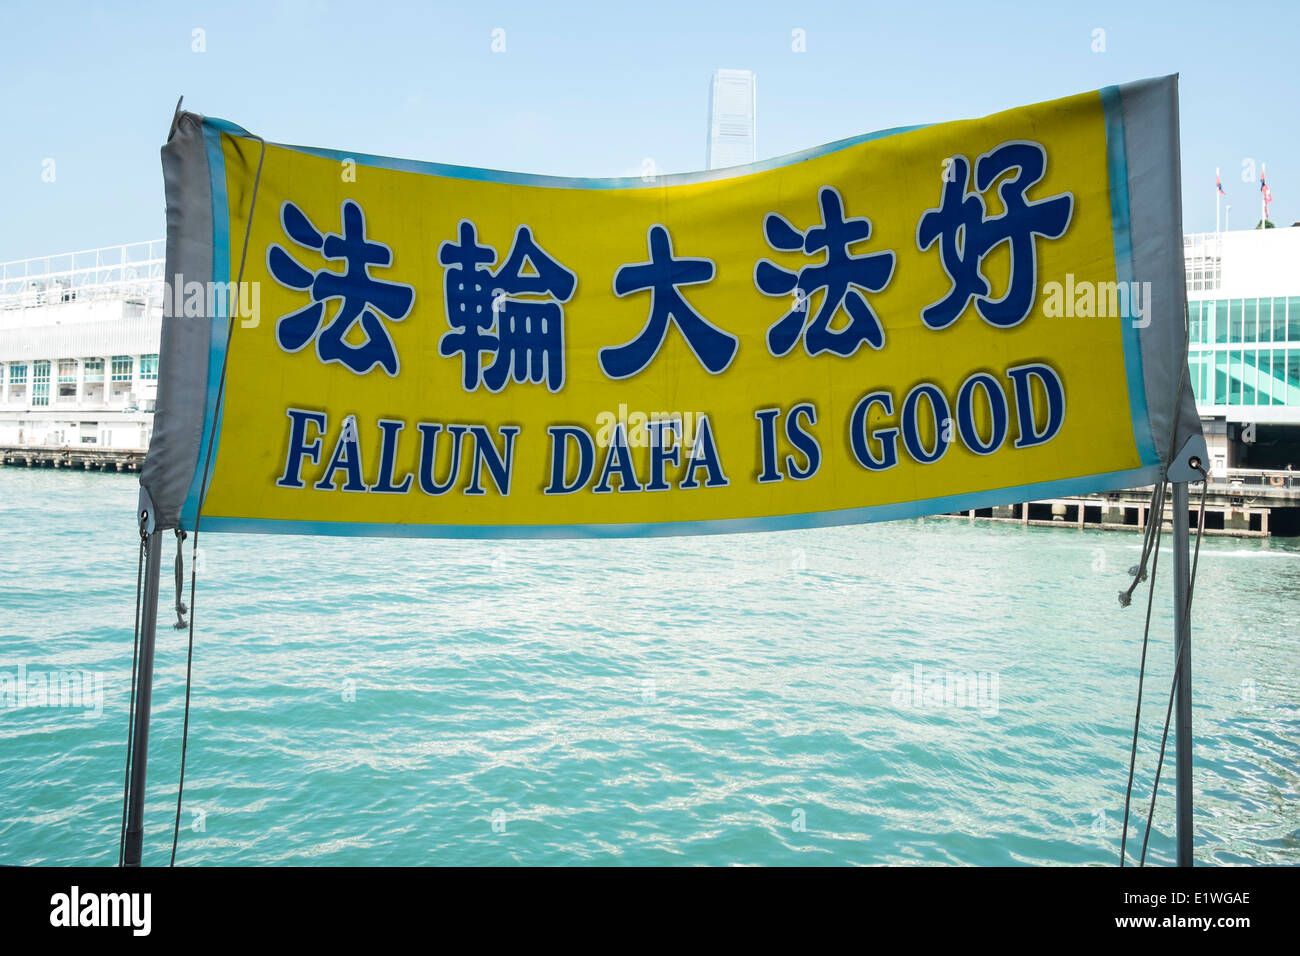 Protest banner by followers of outlawed Falun Dafa ( Gong) in Hong Kong - Stock Image